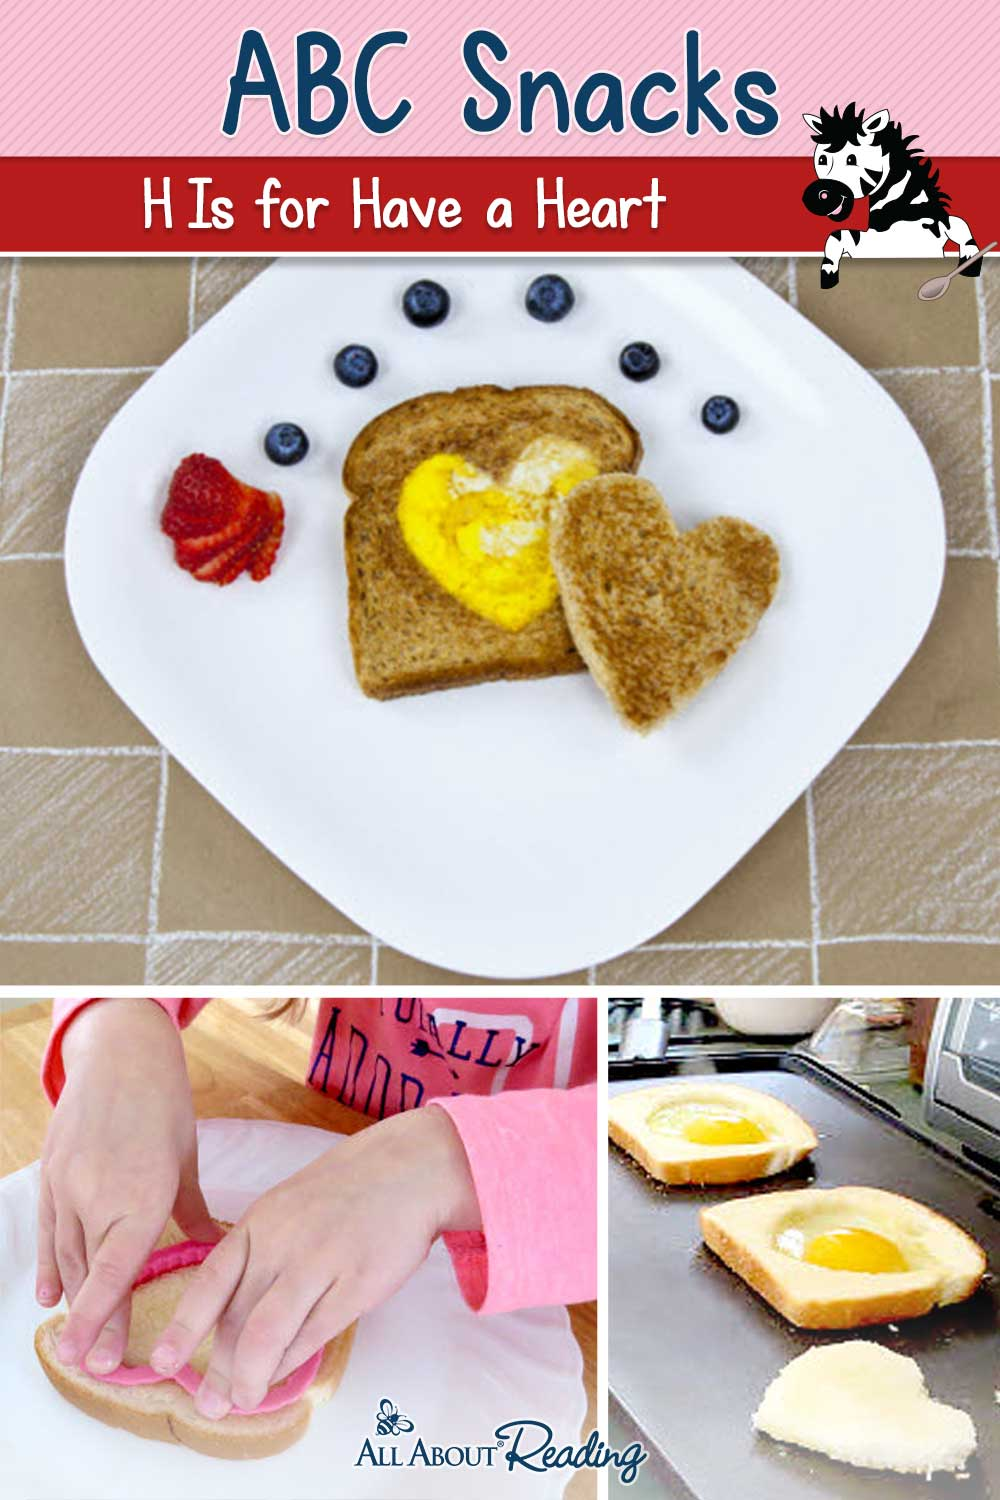 H is for Have a Heart ABC Snack pinterest graphic